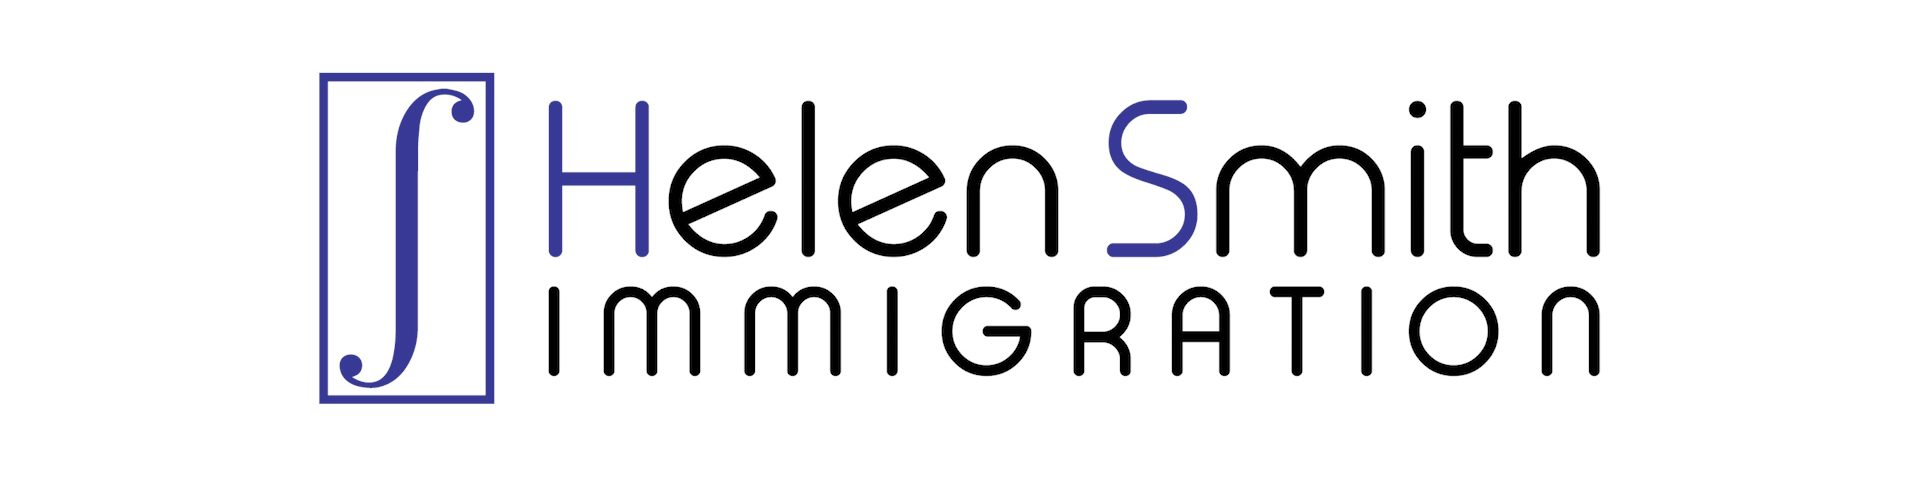 Helen Smith Immigration